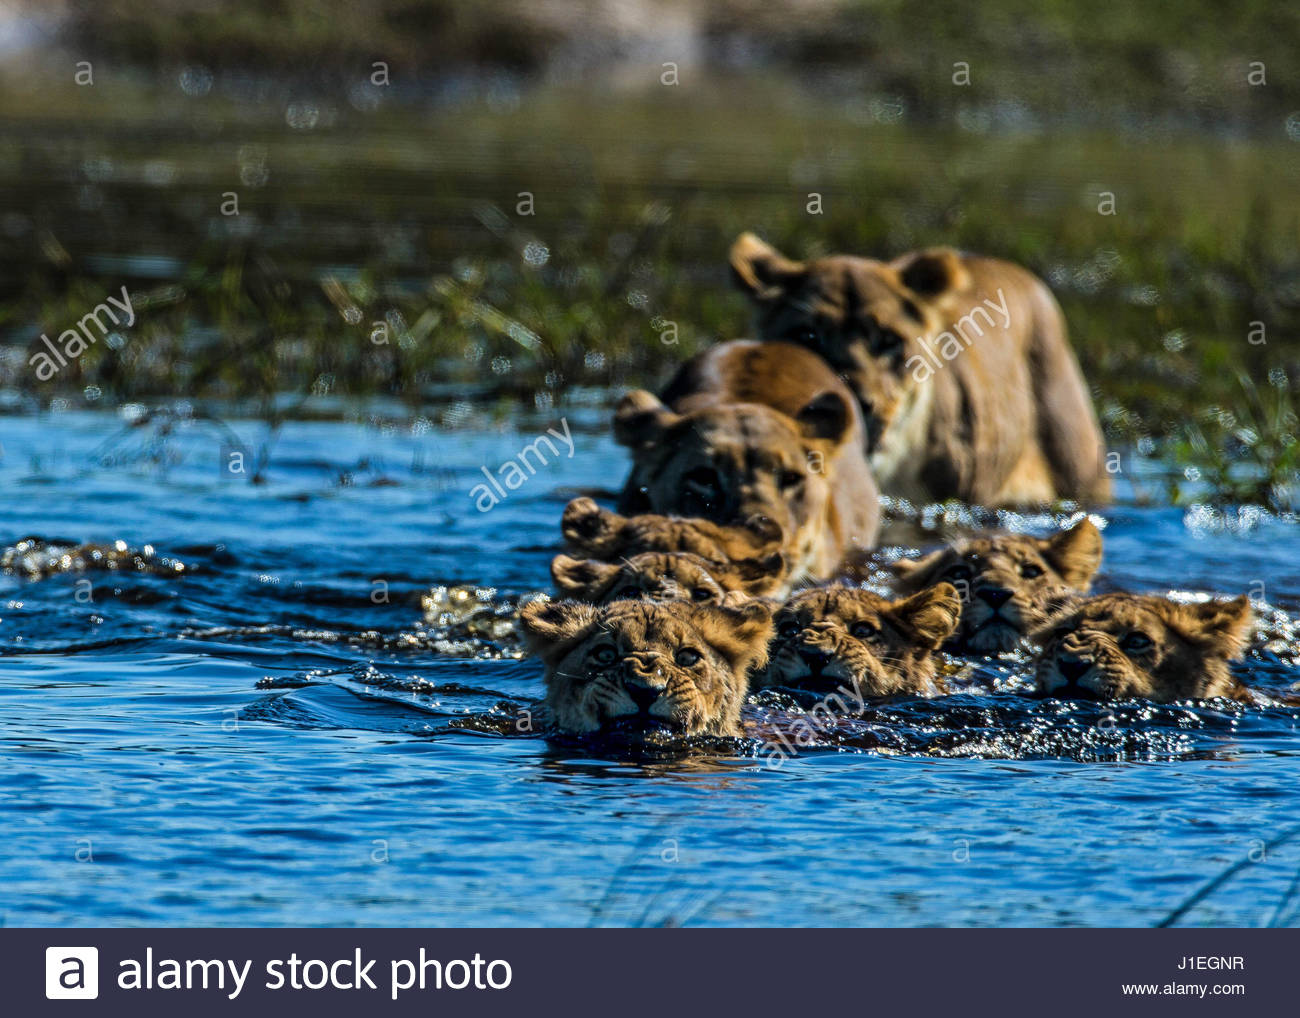 A pride of lions, Panthera leo, crossing a river in Botswana's Okavango Delta. - Stock Image